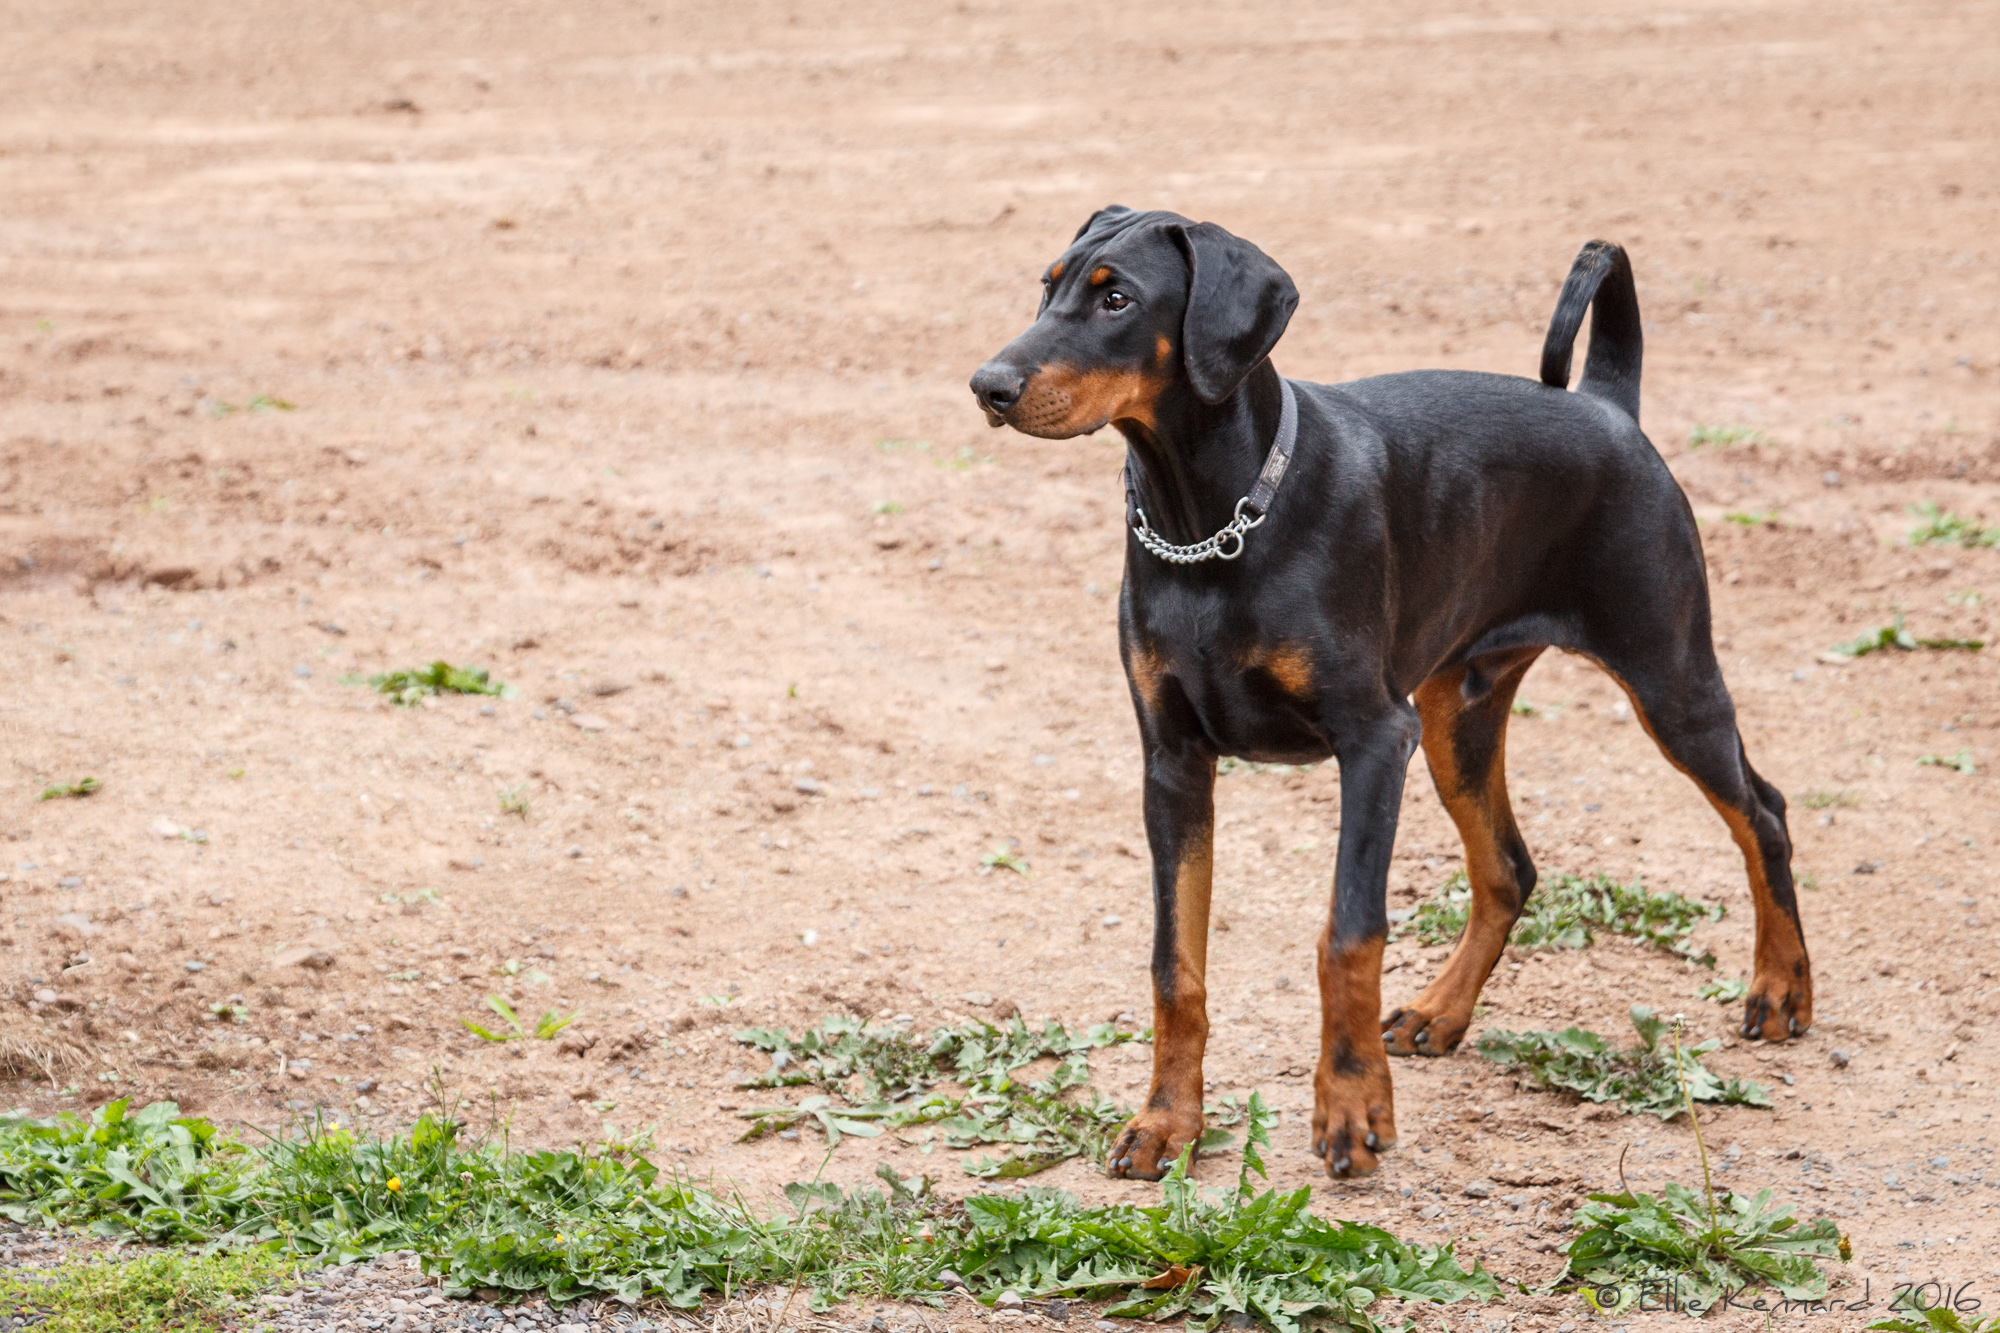 Scout , Doberman Pinscher - Ellie Kennard 2016